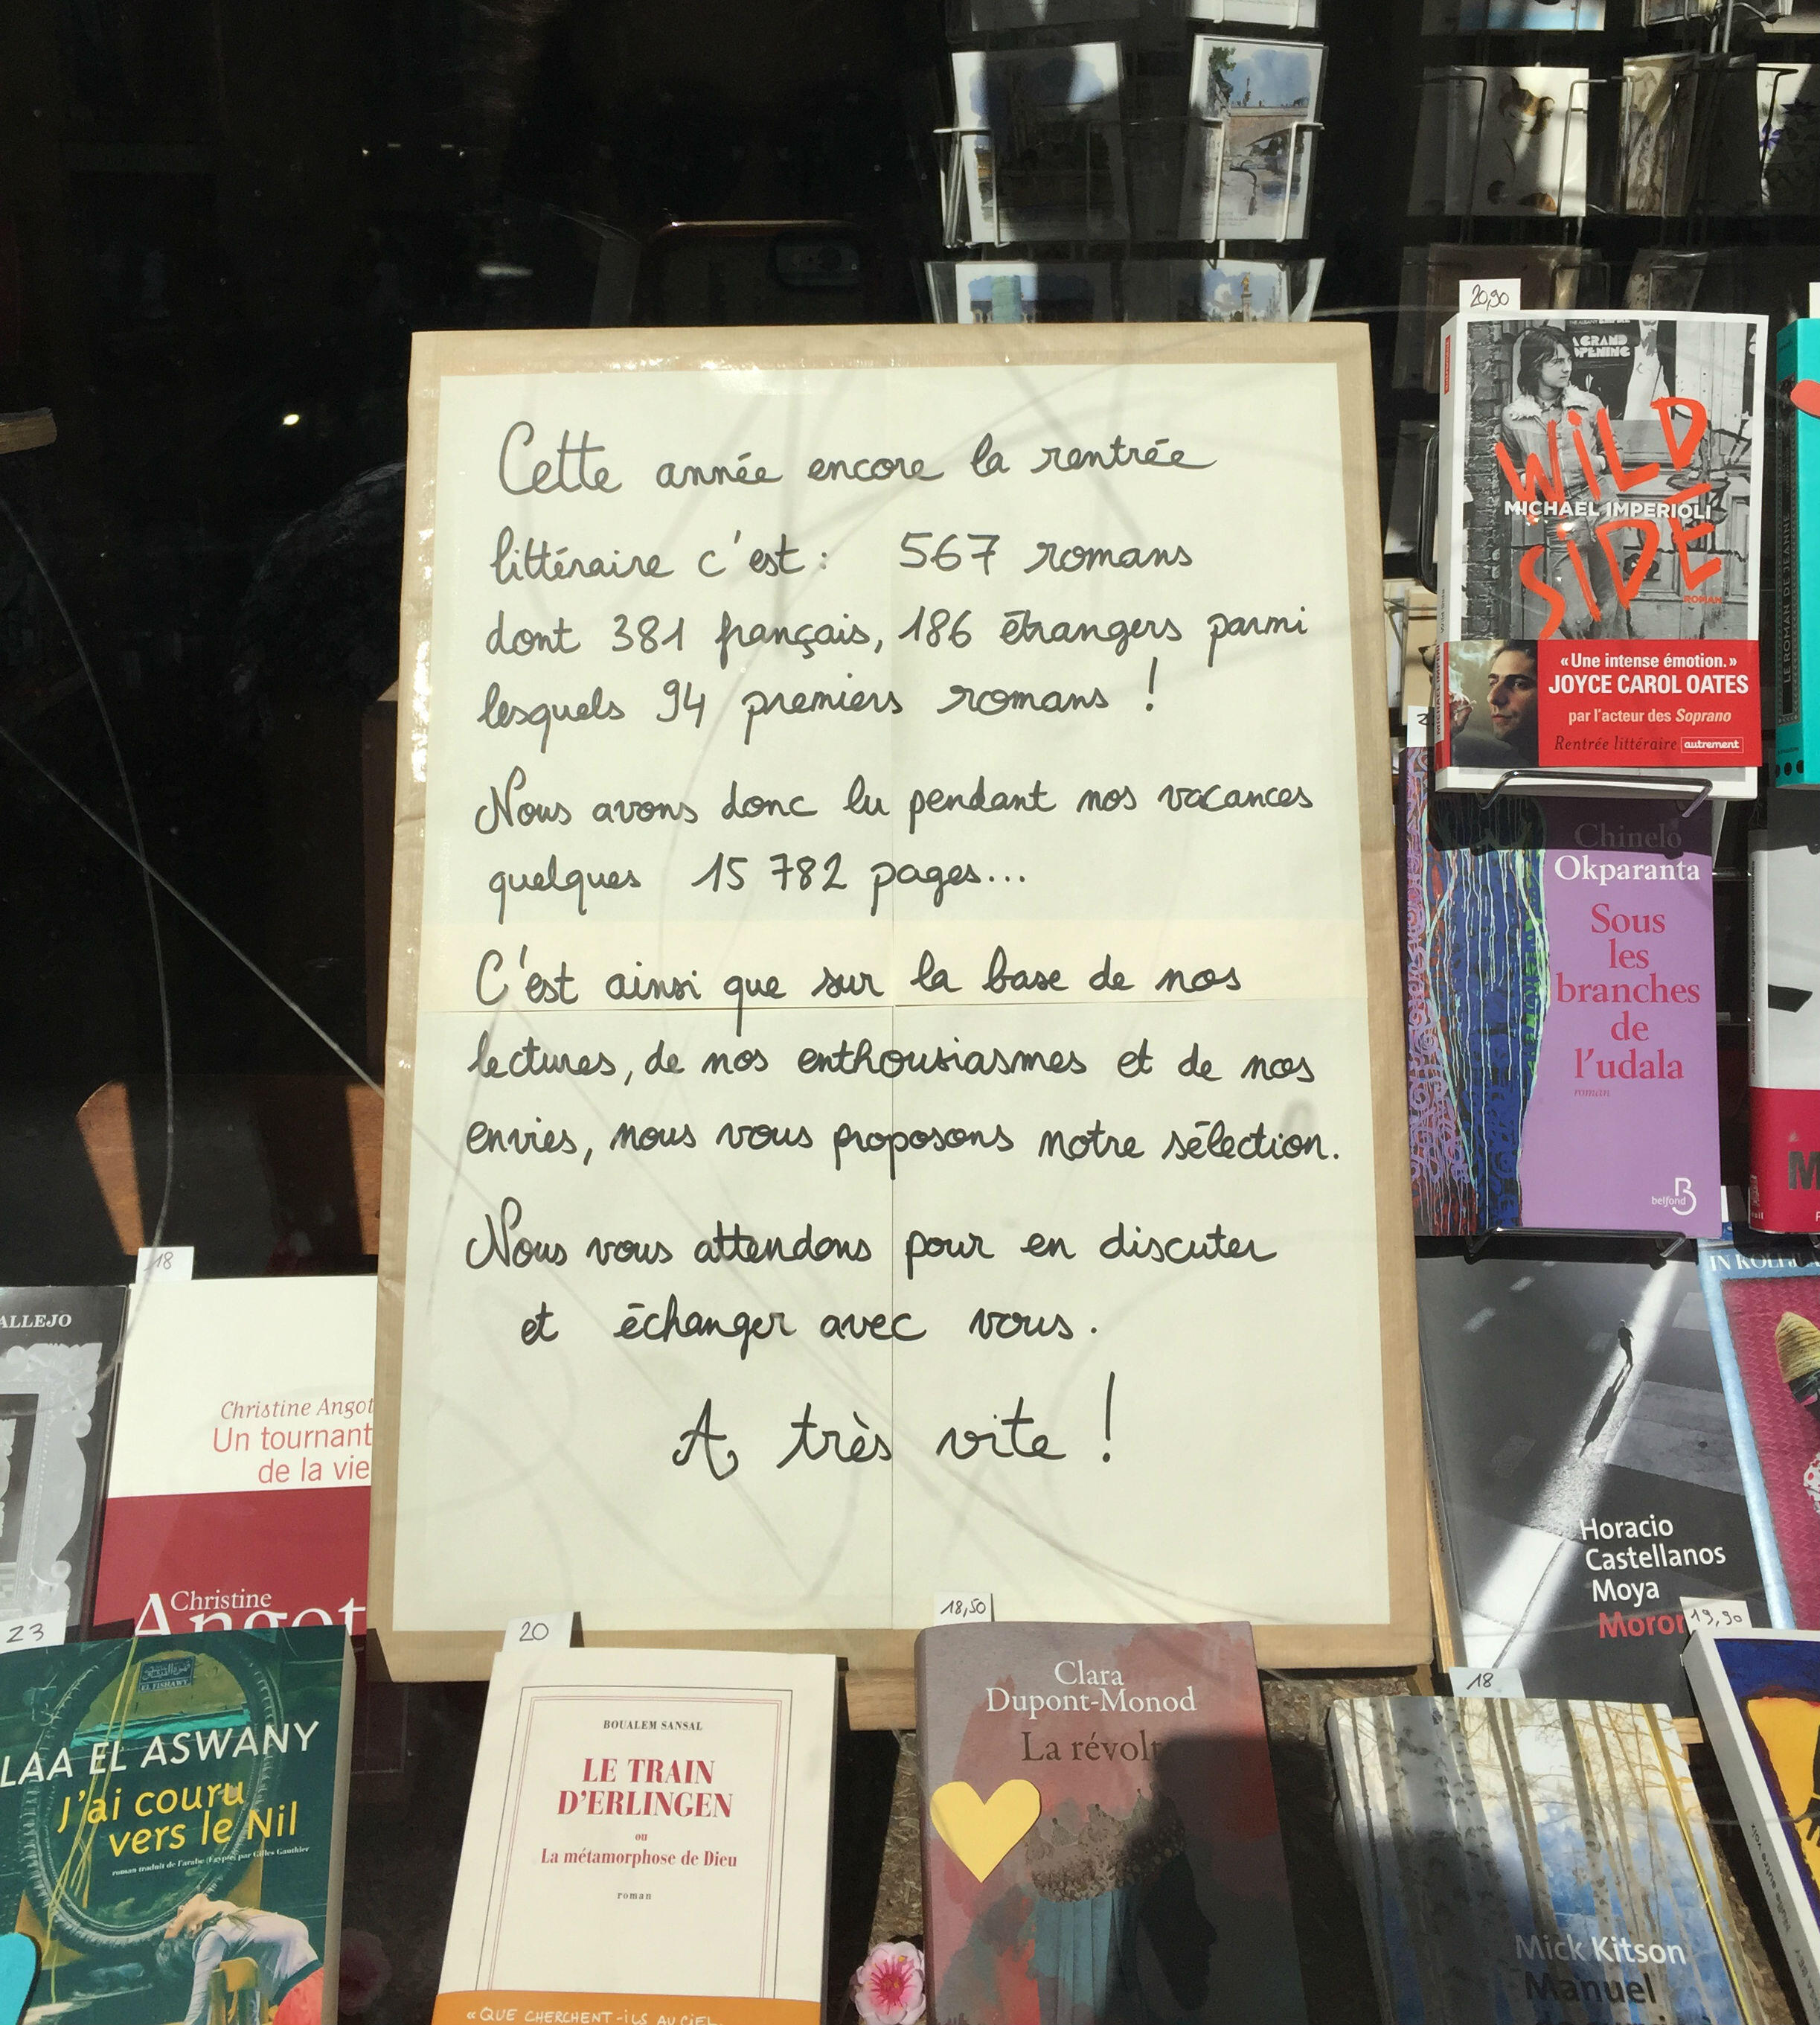 "This book shop sign for the rentrée reads: ""This year, the rentrée littéraire is: 567 novels -- 381 french, 186 foreign -- among whom 94 are first novels! So during our holidays, we read some 15,782 pages... We look forward to discussing and sharing them with you!"""